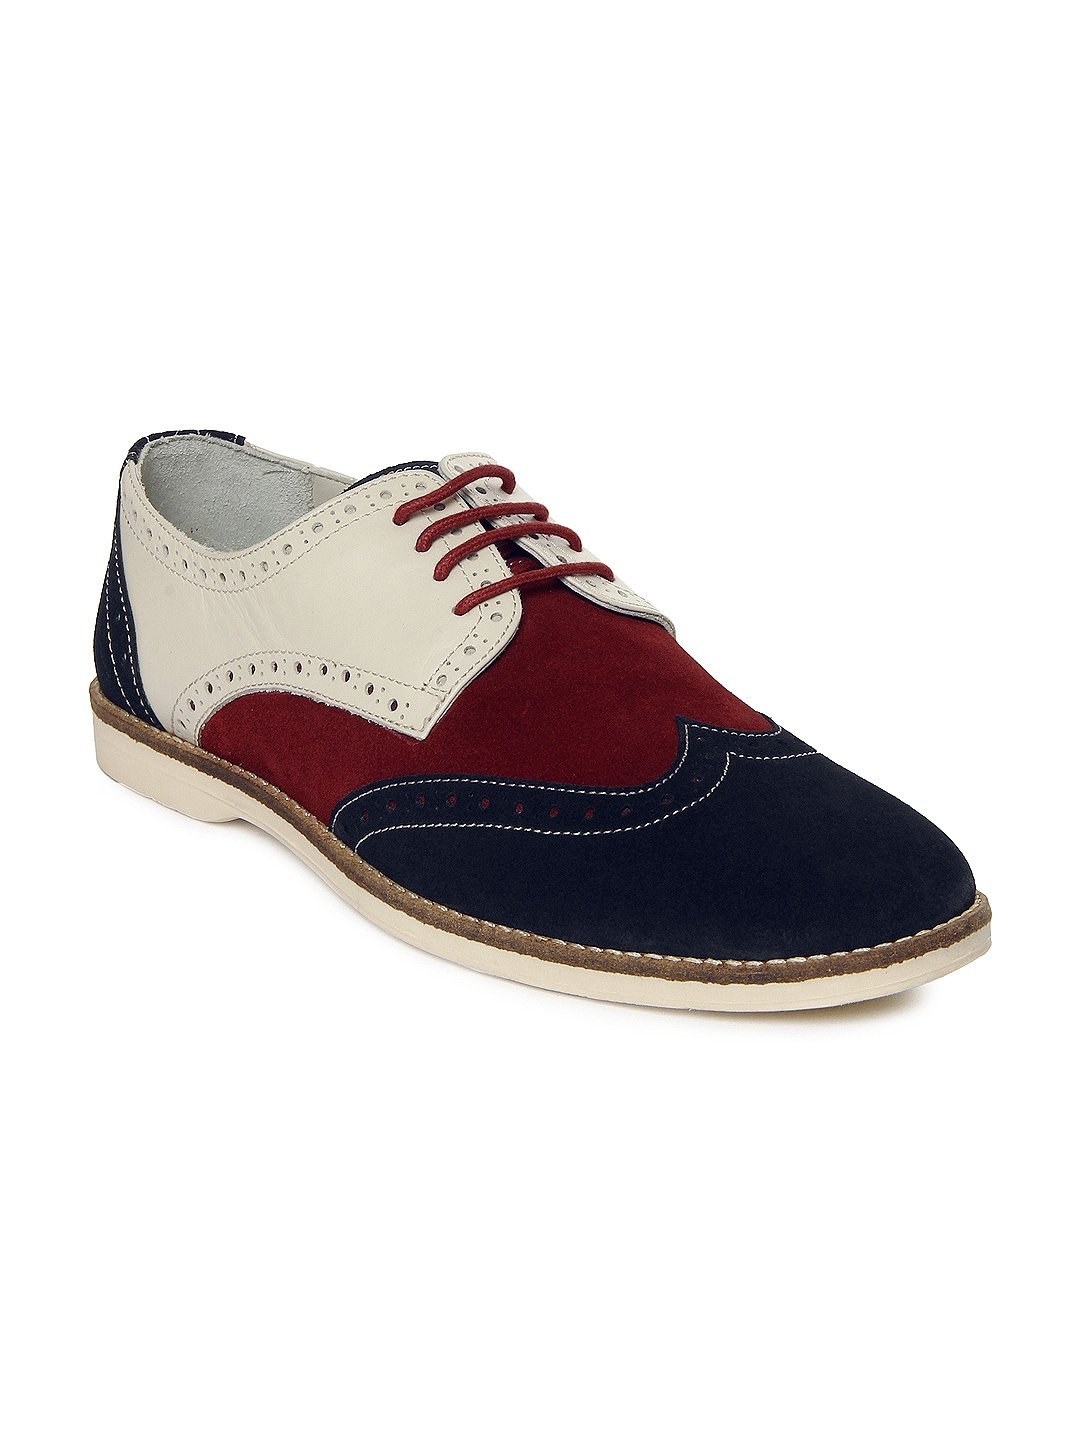 United Colors Of Benetton Shoes For Men